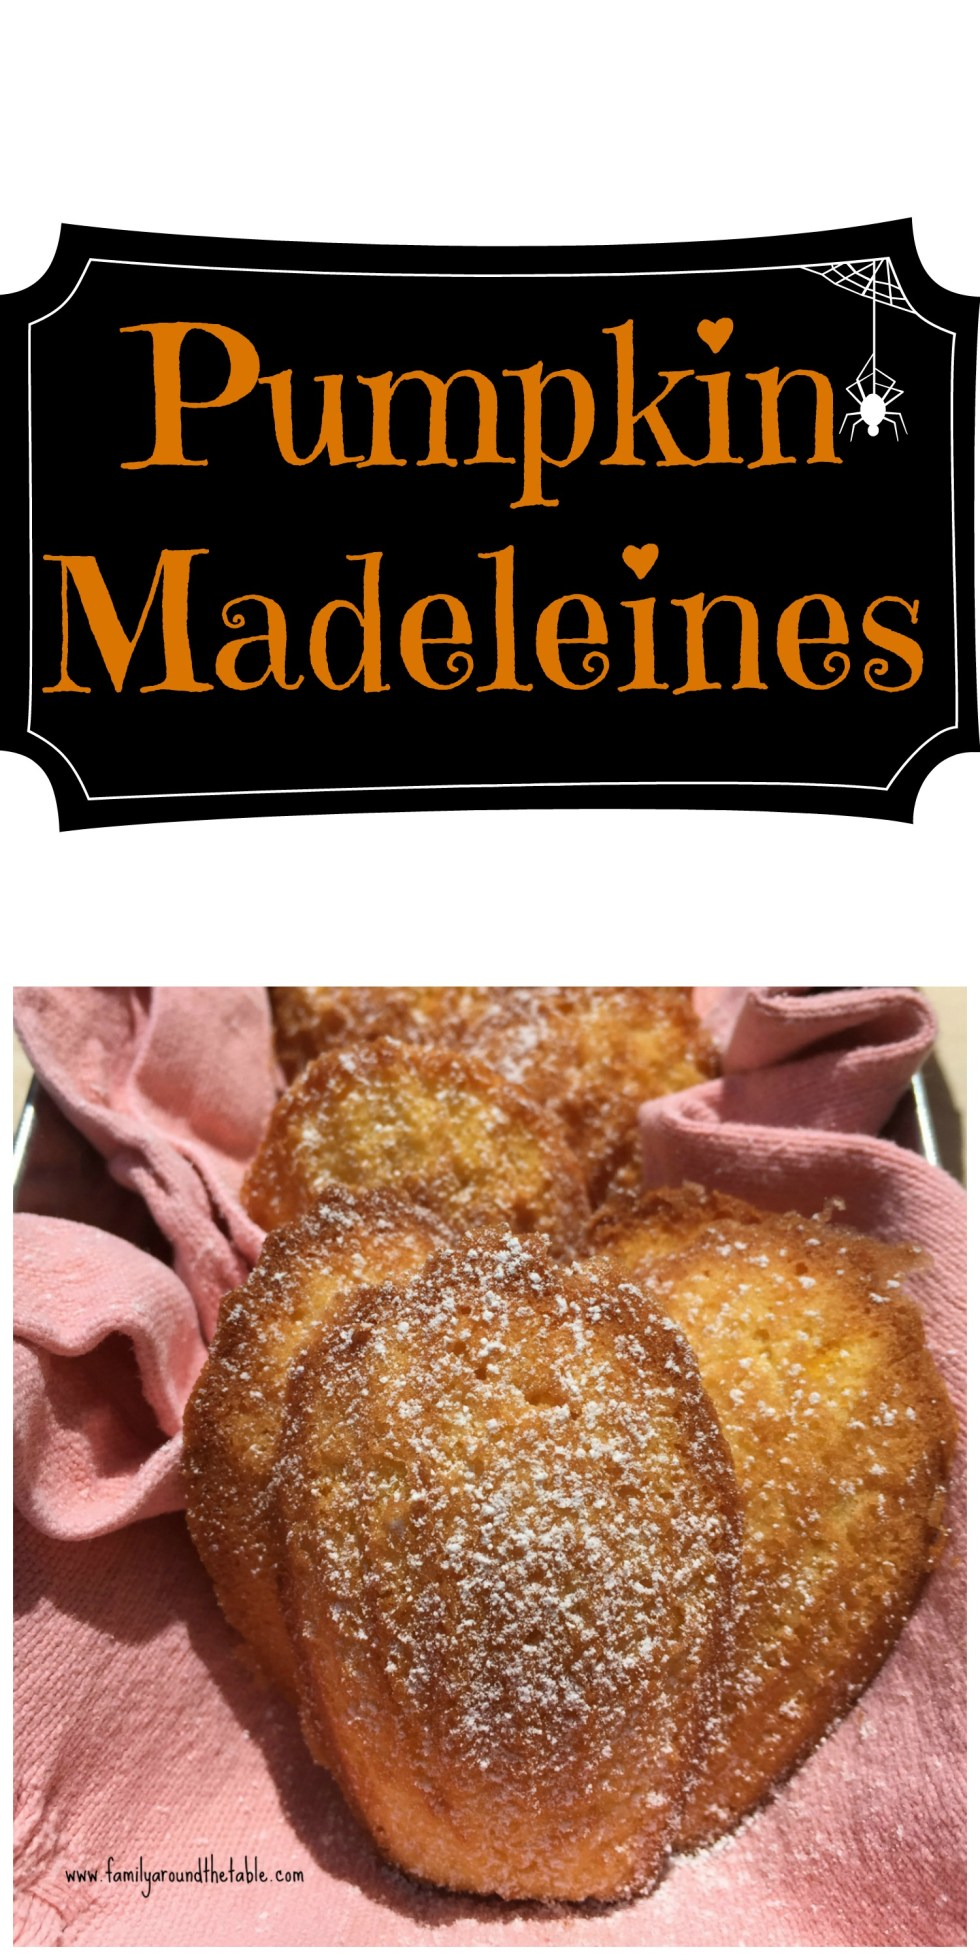 Pumpkin madeleines are a delicious fall treat.